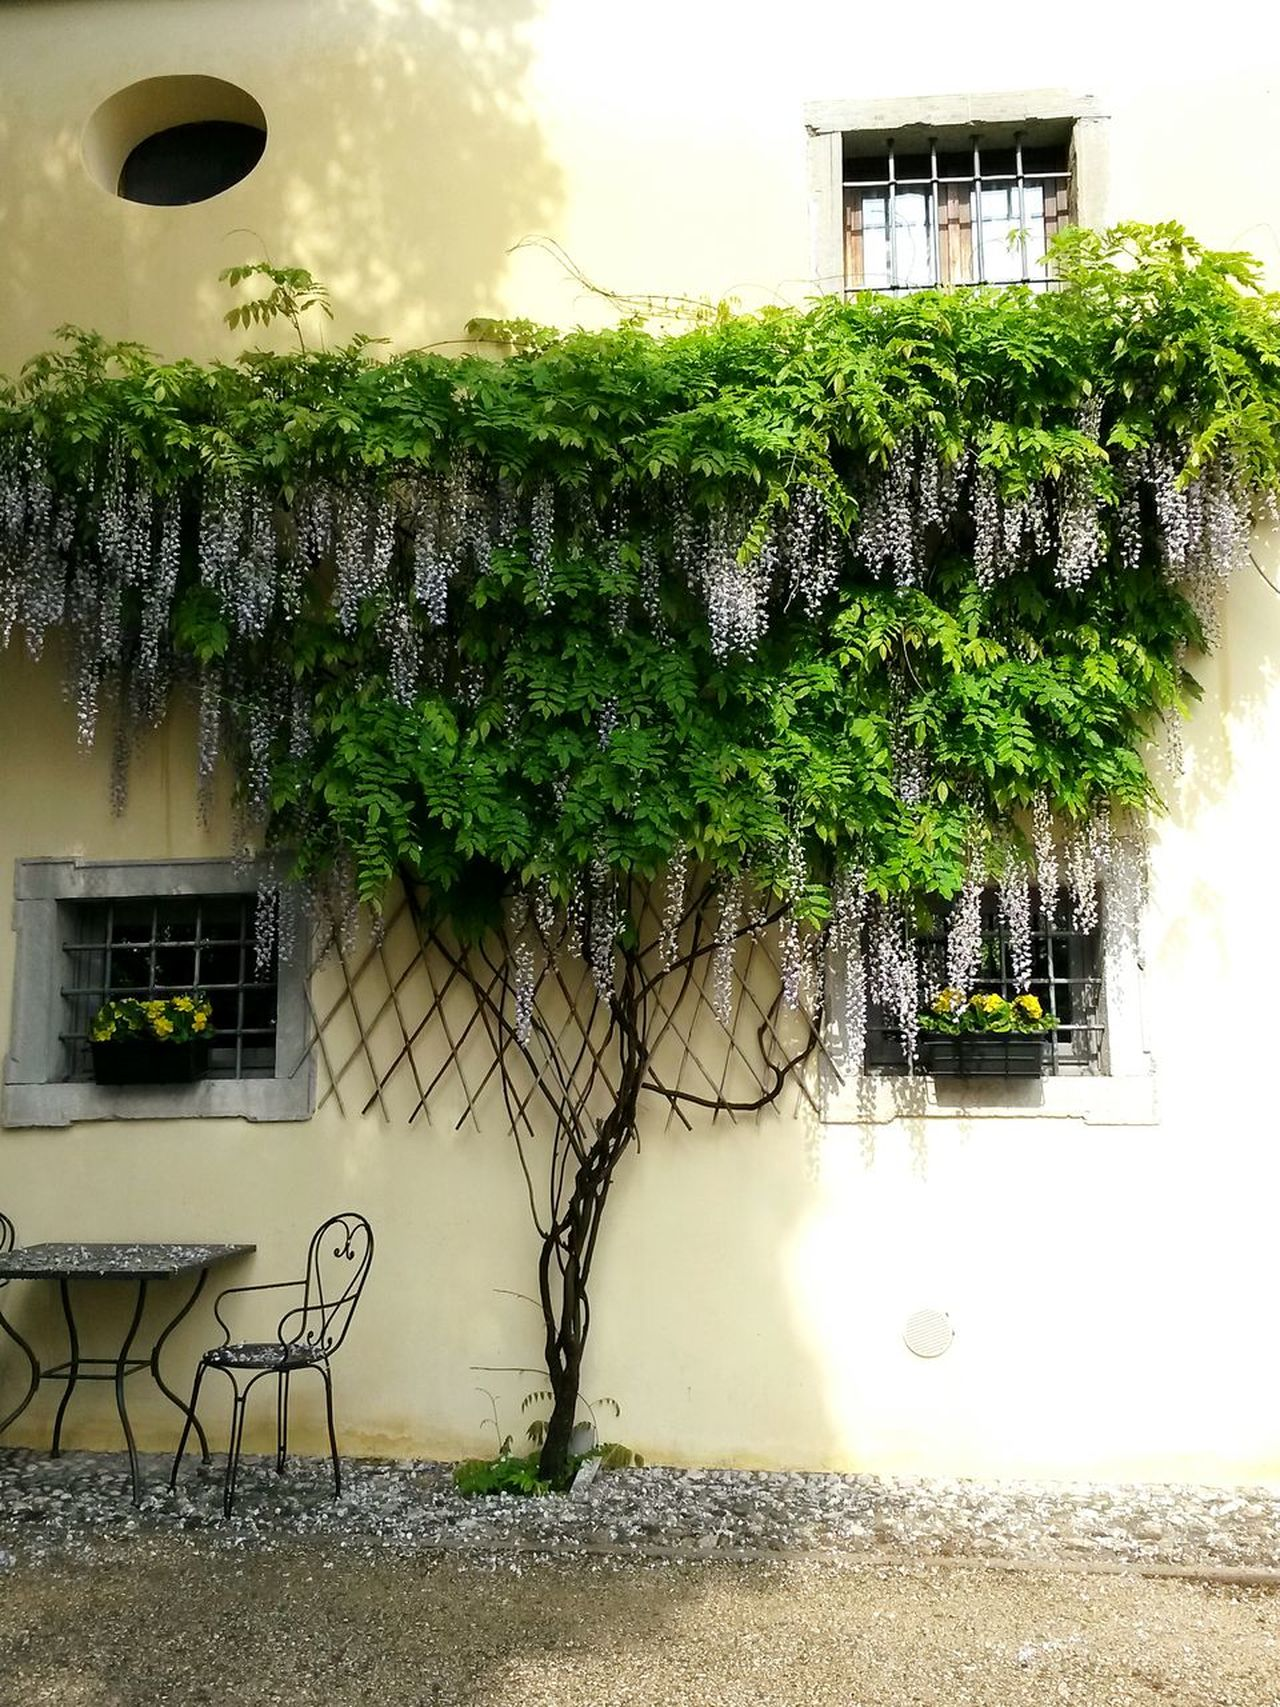 Outdoors Tree Building Exterior Glicineinfiore Glicine Locanda No People Chairs And A Table Wine Bar Castle Outdoors Day Blossoming Tree Plant